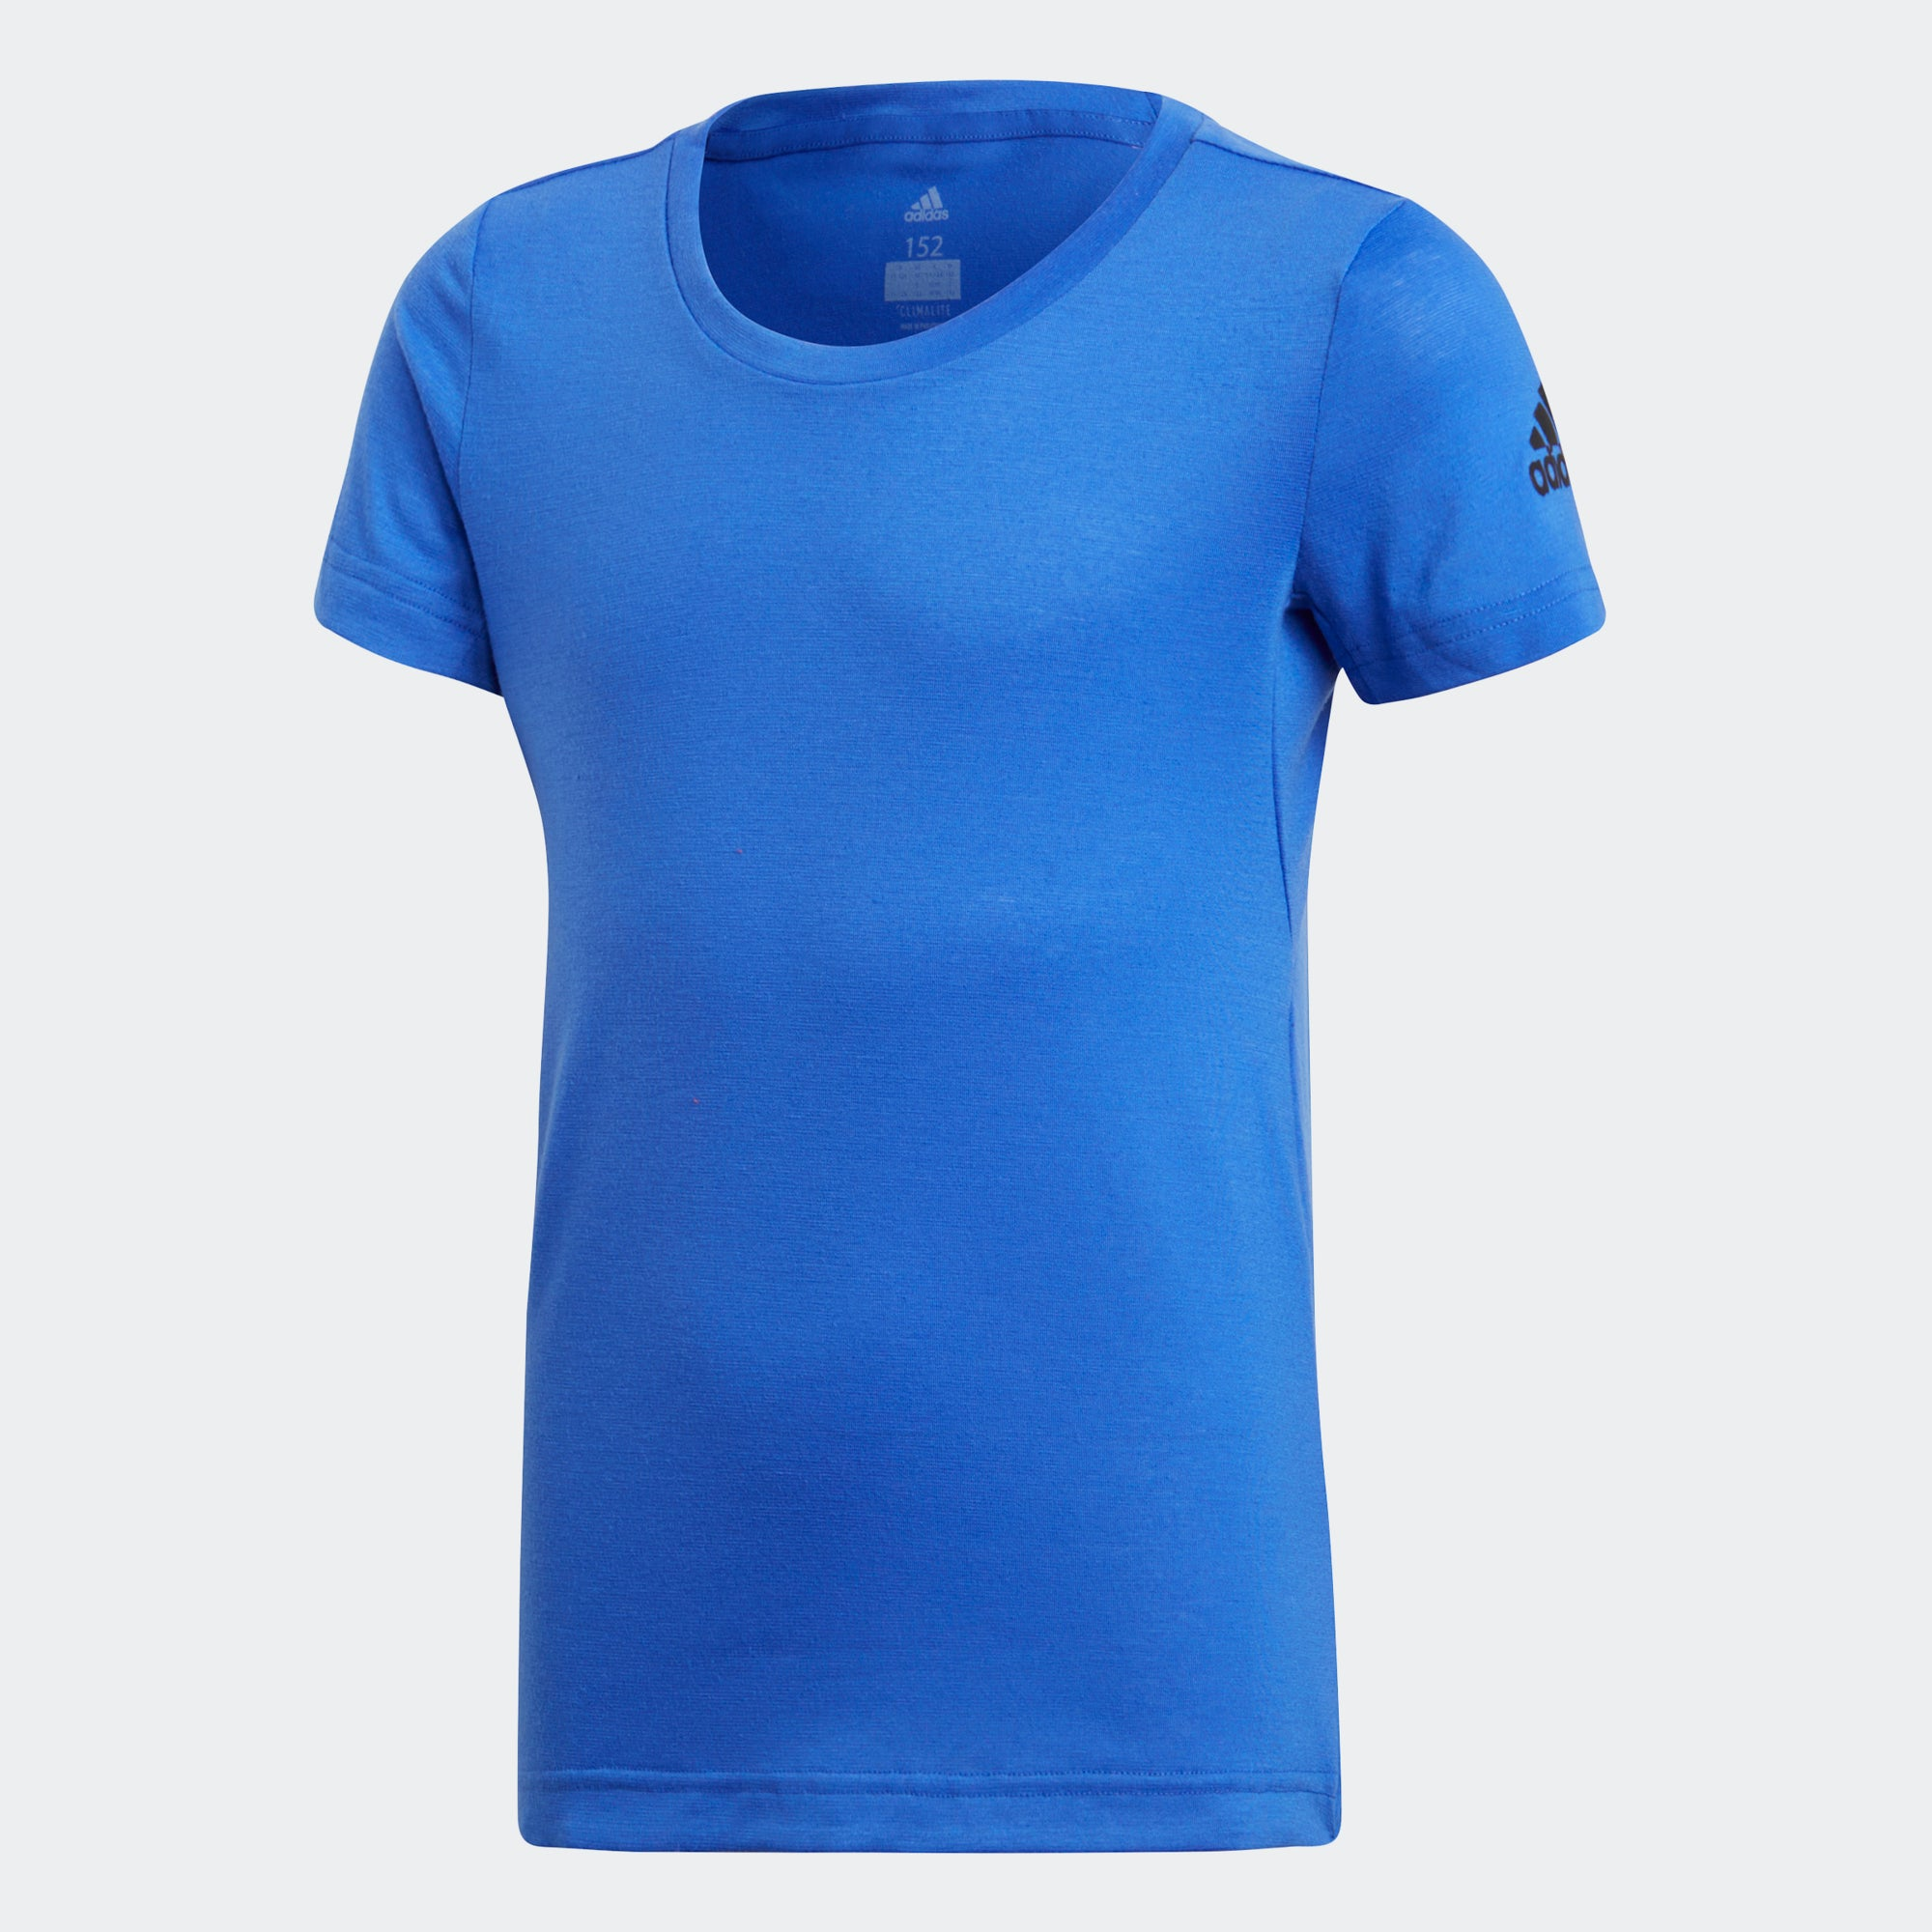 2148a0e1 Buy adidas Women Prime Tee, Blue Online in Singapore | Royal Sporting House